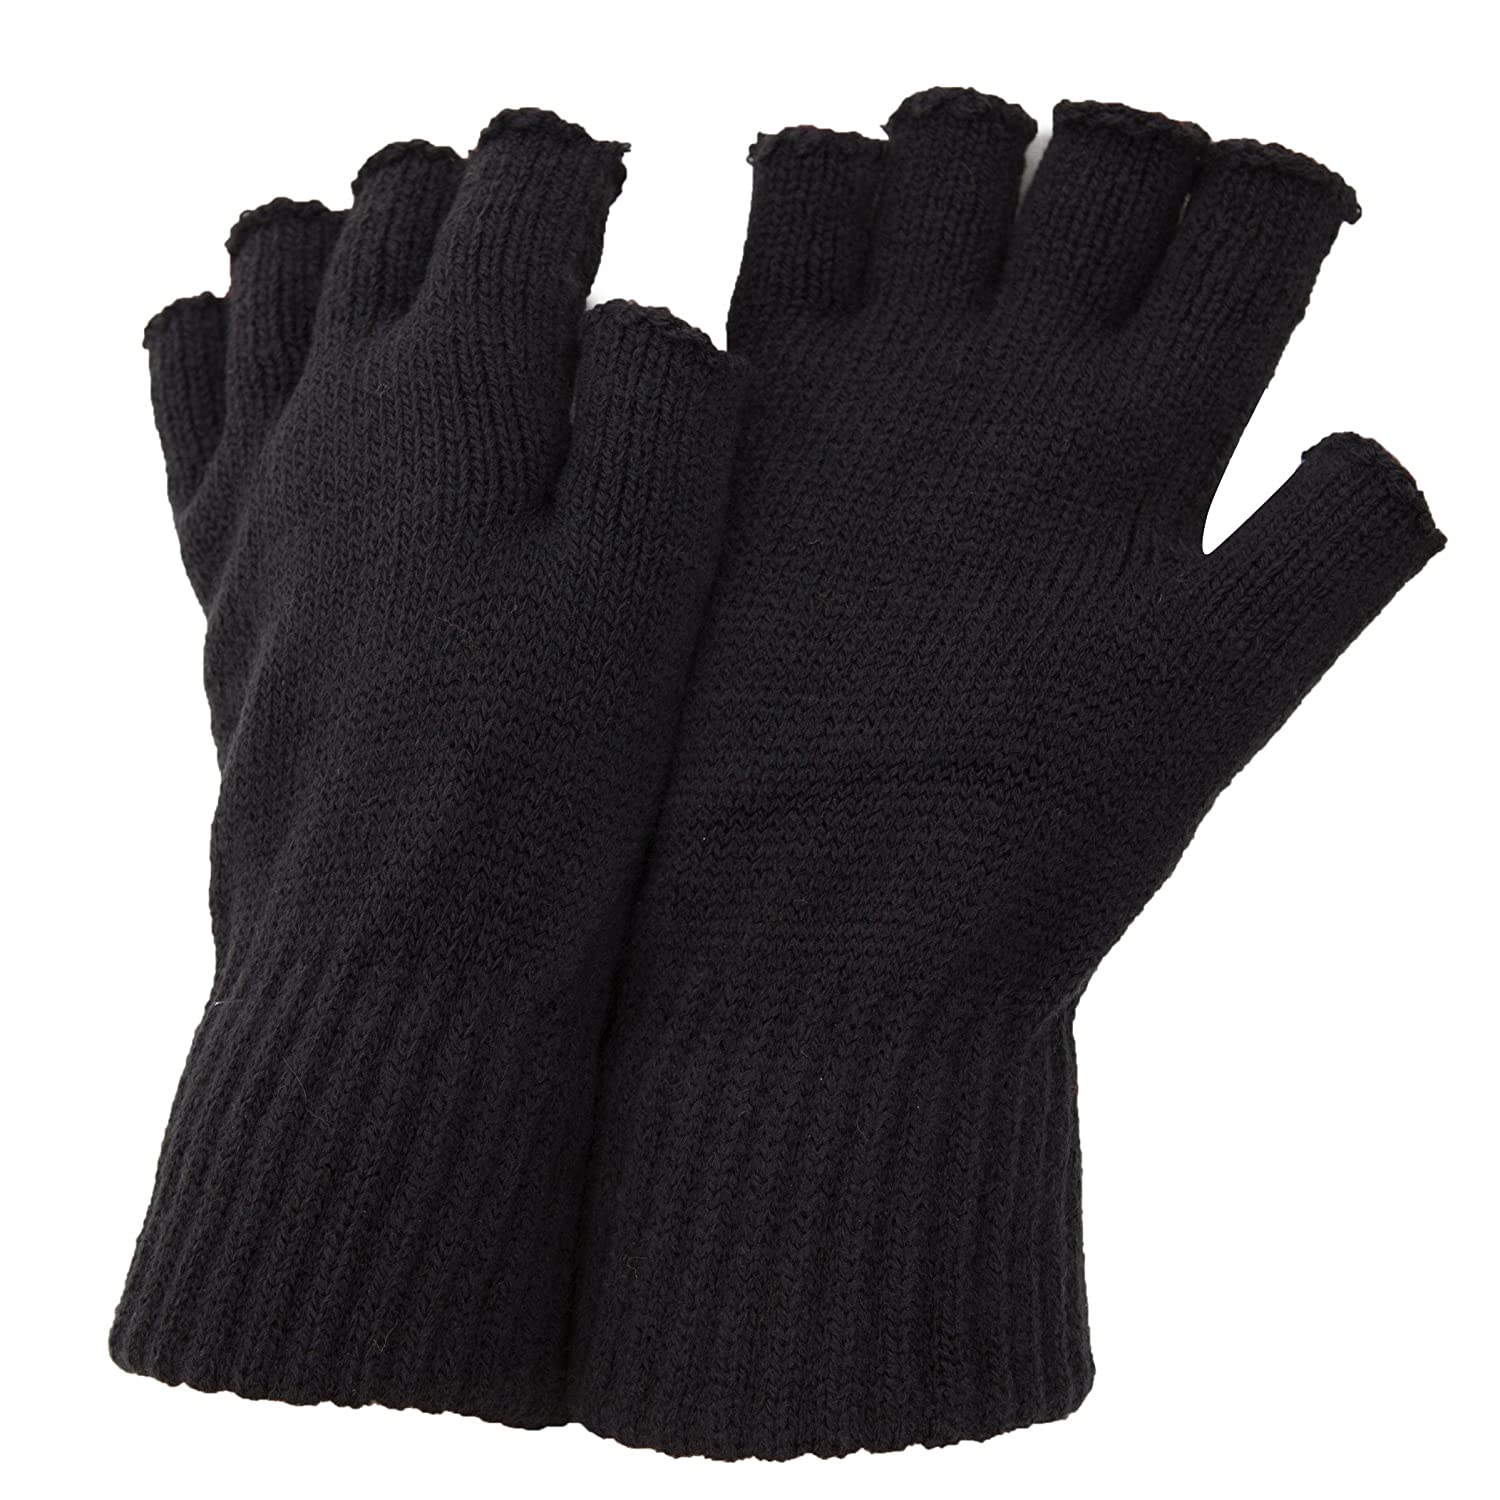 FLOSO Mens Fingerless Winter Gloves (One Size) (Dark Grey) UTMG-12D_5